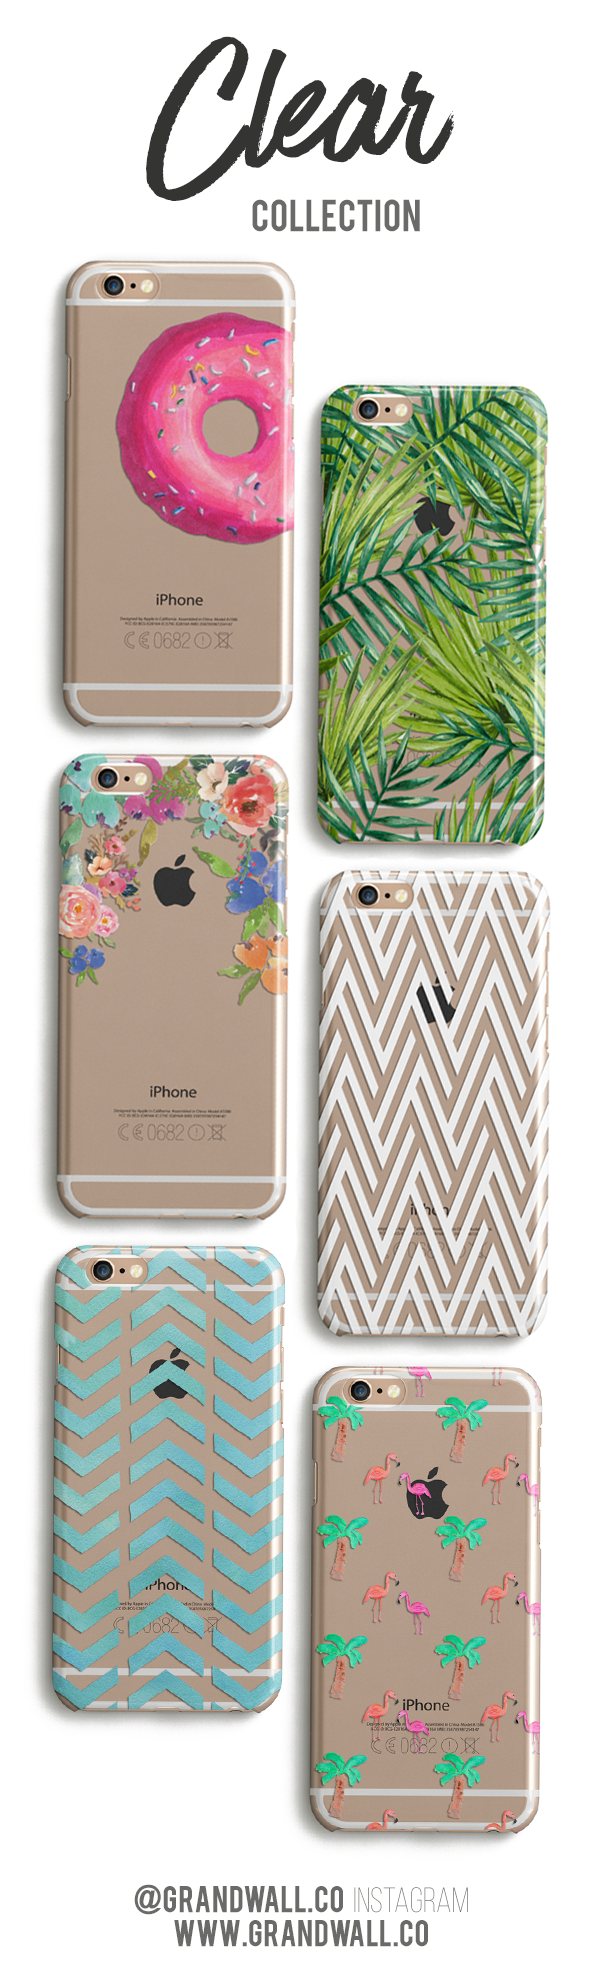 "Use Code ""PINTEREST"" for 10% off these exclusive @grandwall designs here: http://grandwall.co/collections/clear-phone-cases"